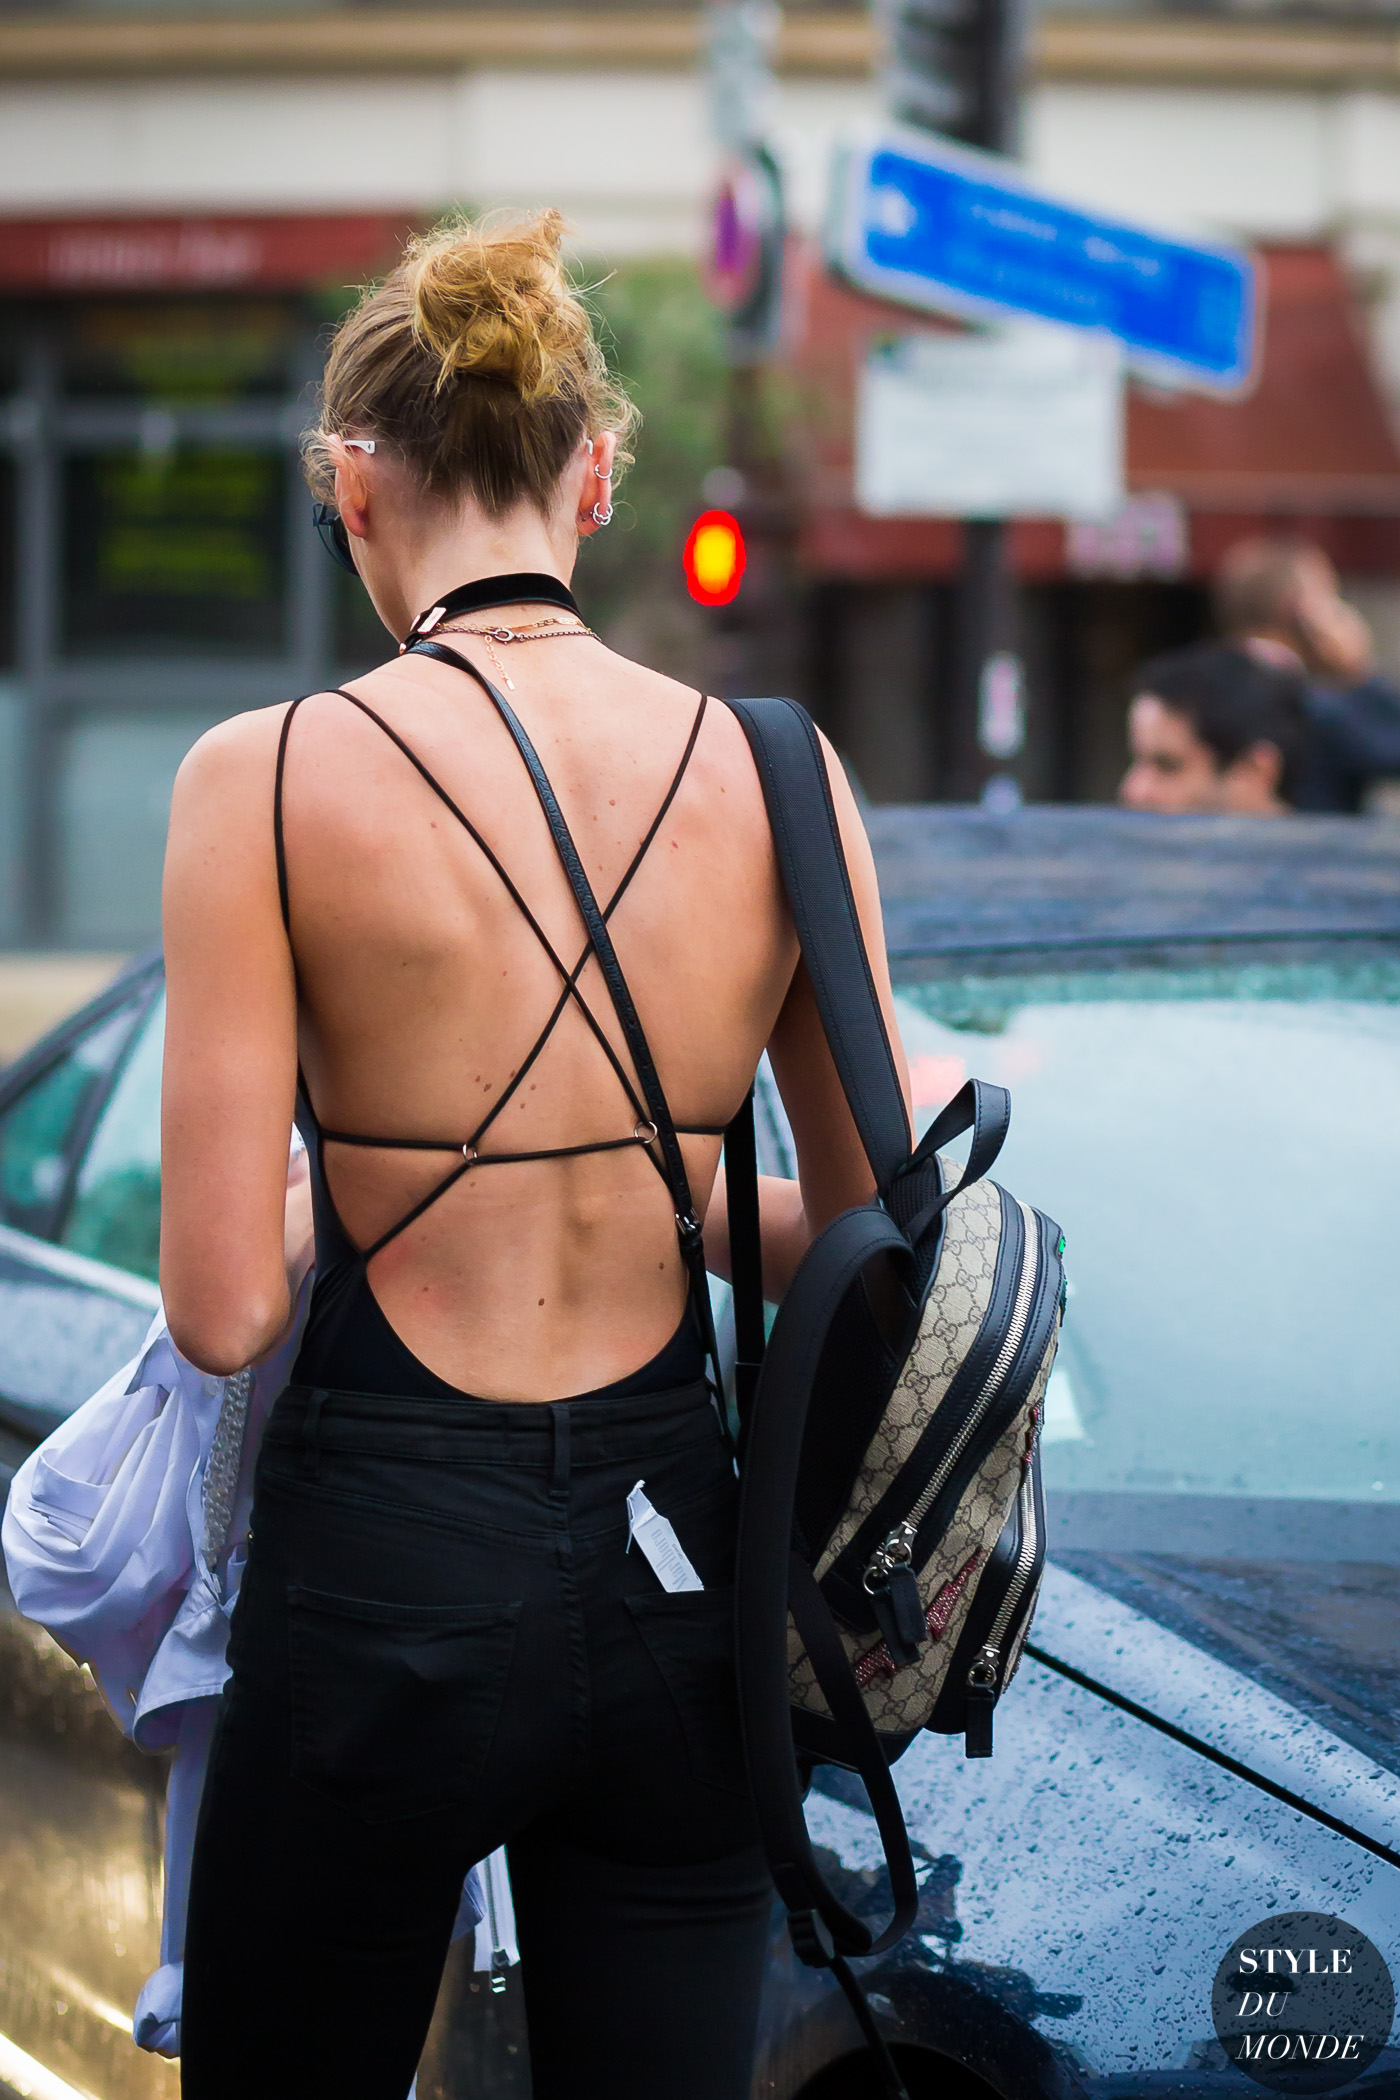 Stella Maxwell Street Style Street Fashion Streetsnaps by STYLEDUMONDE Street Style Fashion Photography